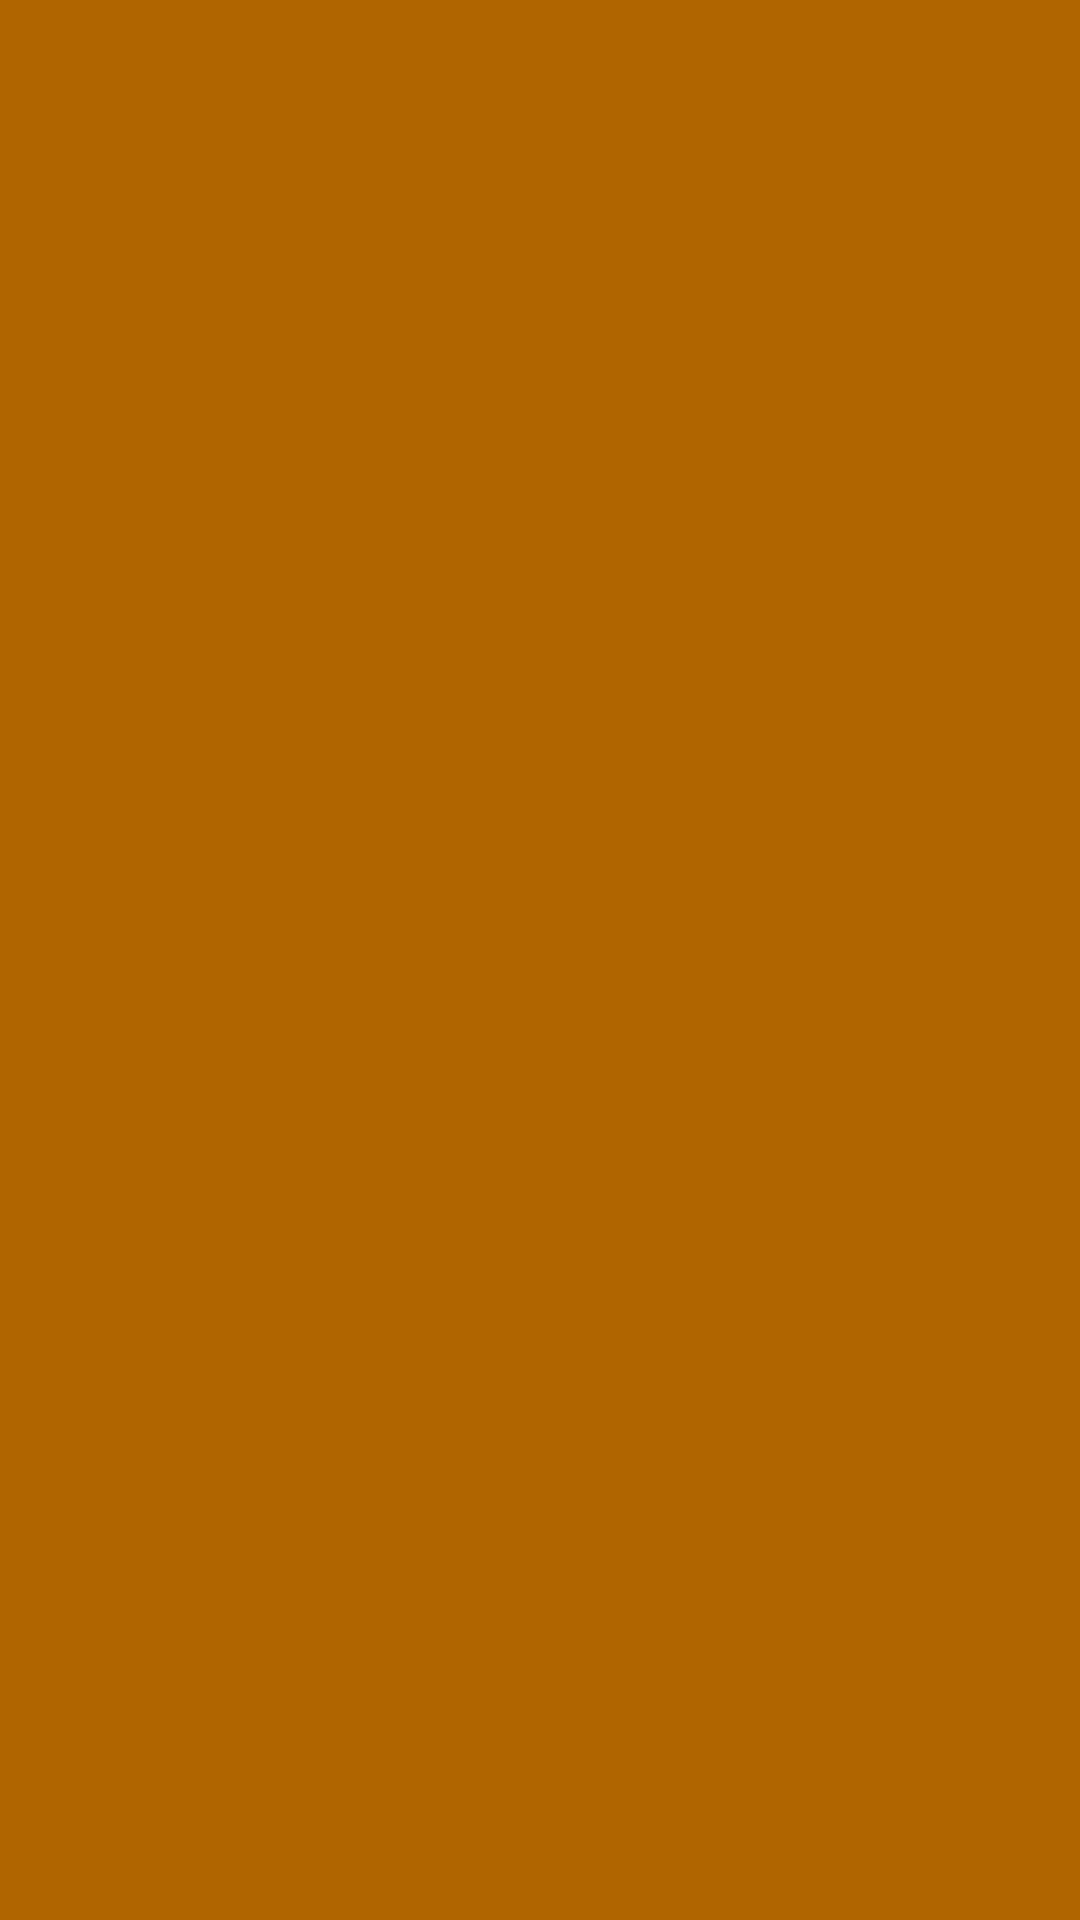 1080x1920 Ginger Solid Color Background